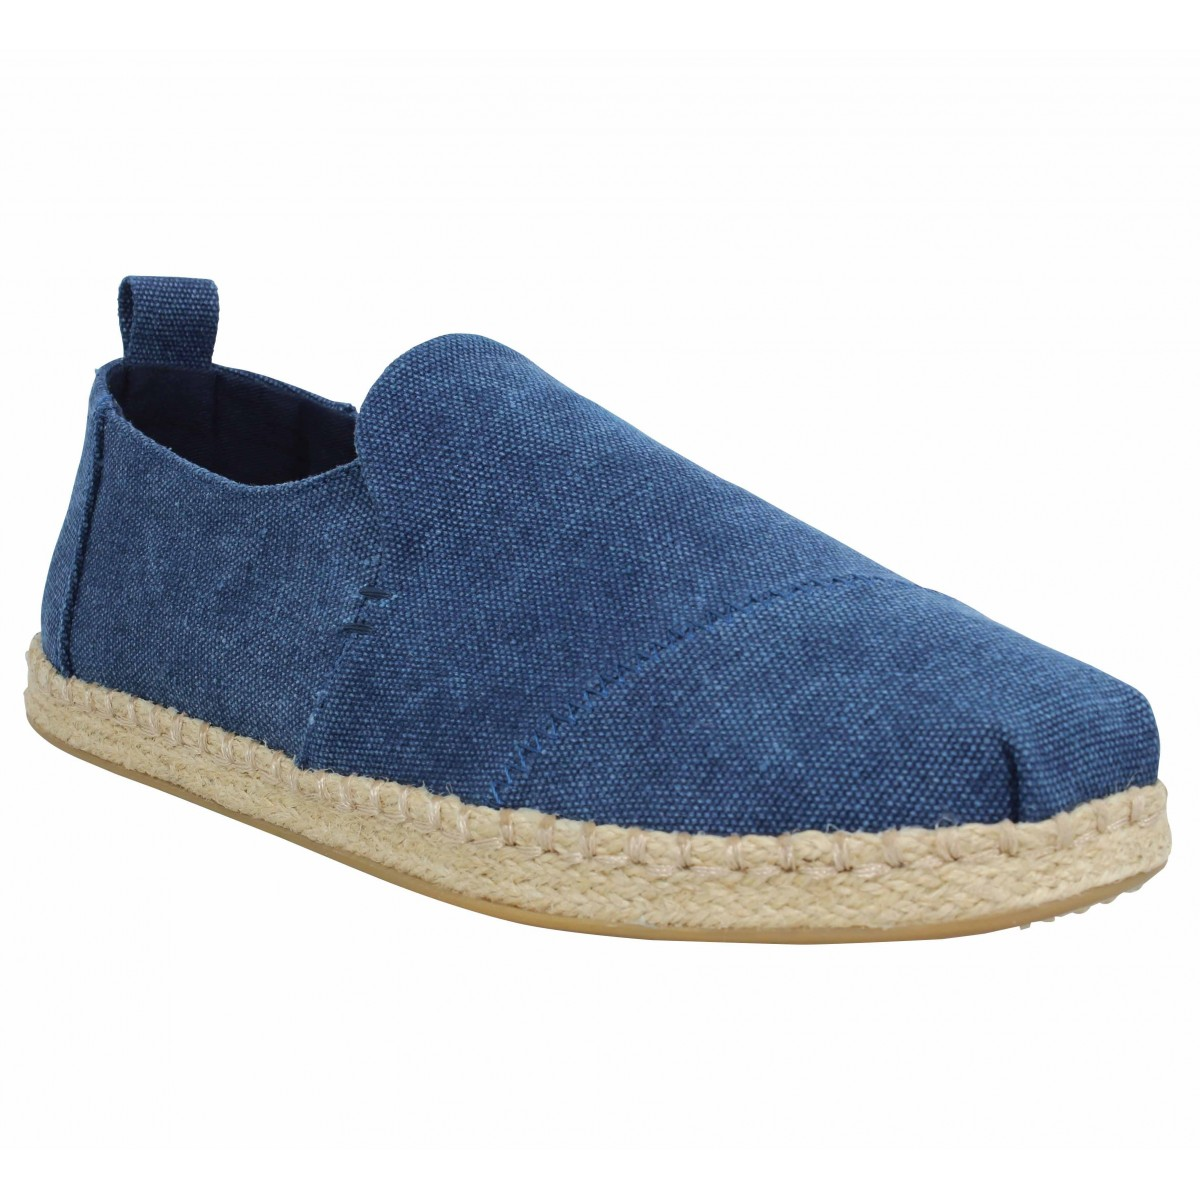 Espadrilles TOMS Deconstructed Alpargata Rope toile Homme Navy